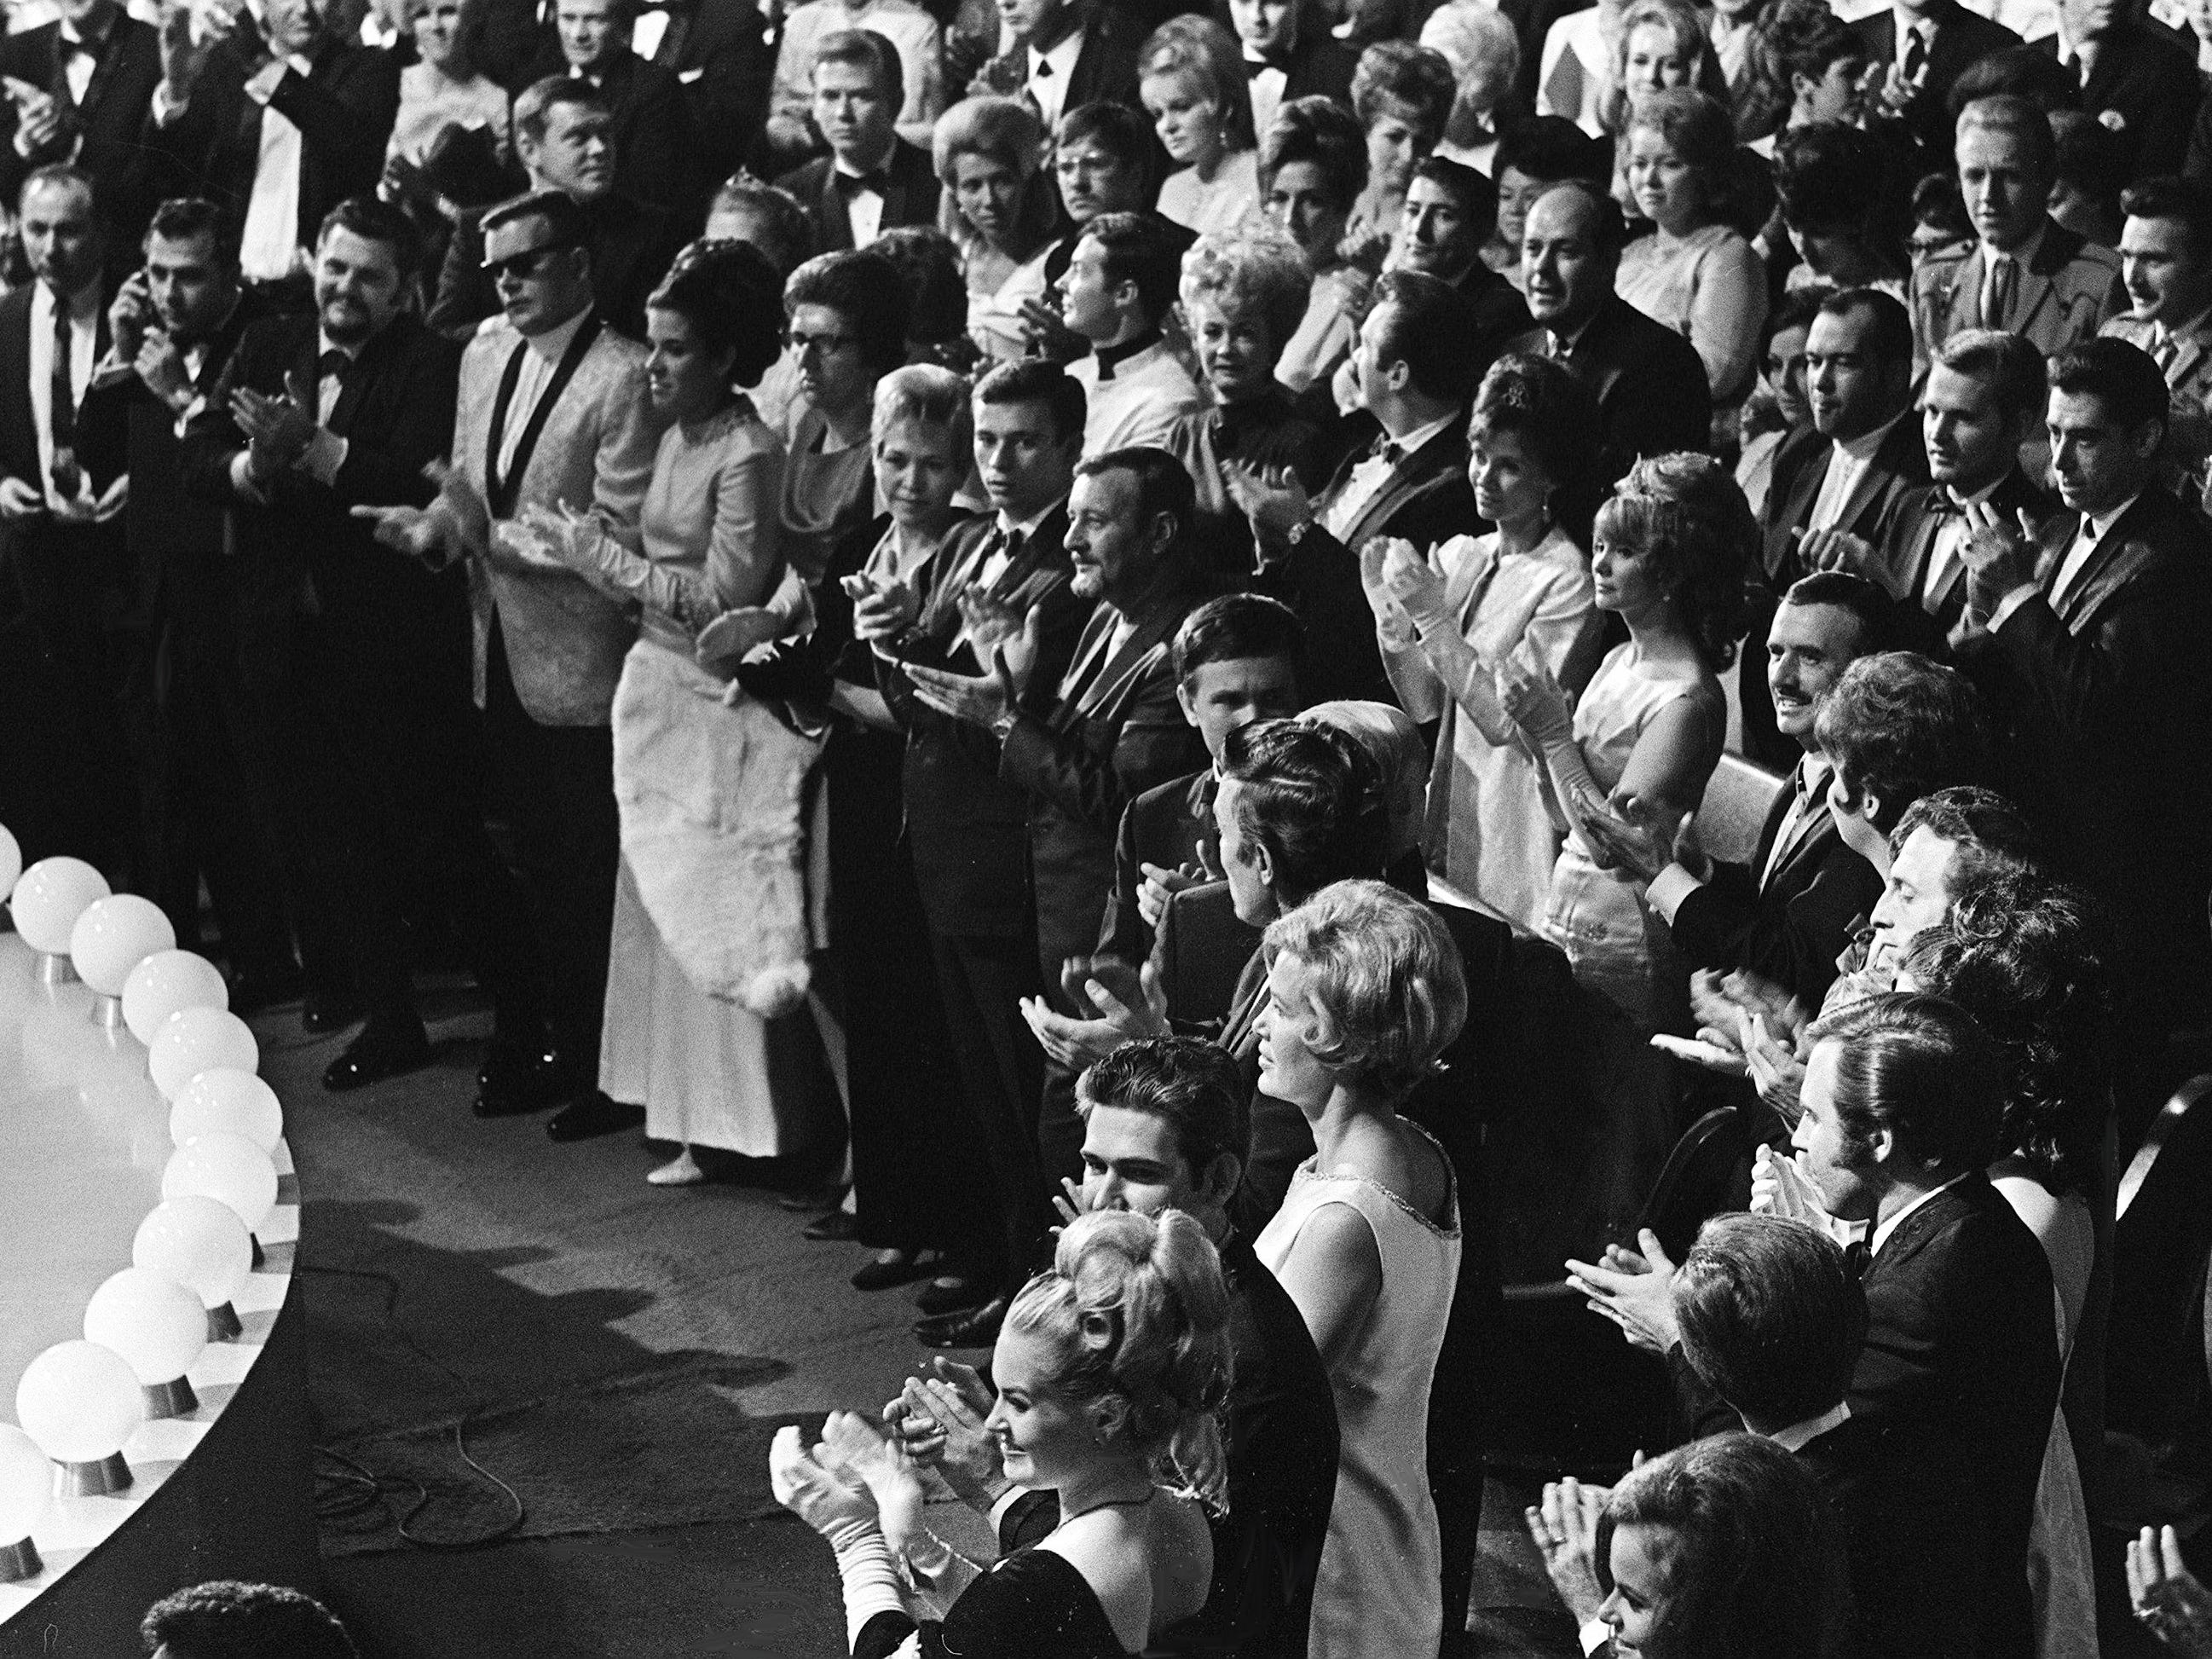 """The stars and fans stand as Bob Wills, writer of """"San Antonio Rose,"""" is named to the Country Music Hall of Fame during the second annual CMA Awards show at the Ryman Auditorium on Oct. 18, 1968."""